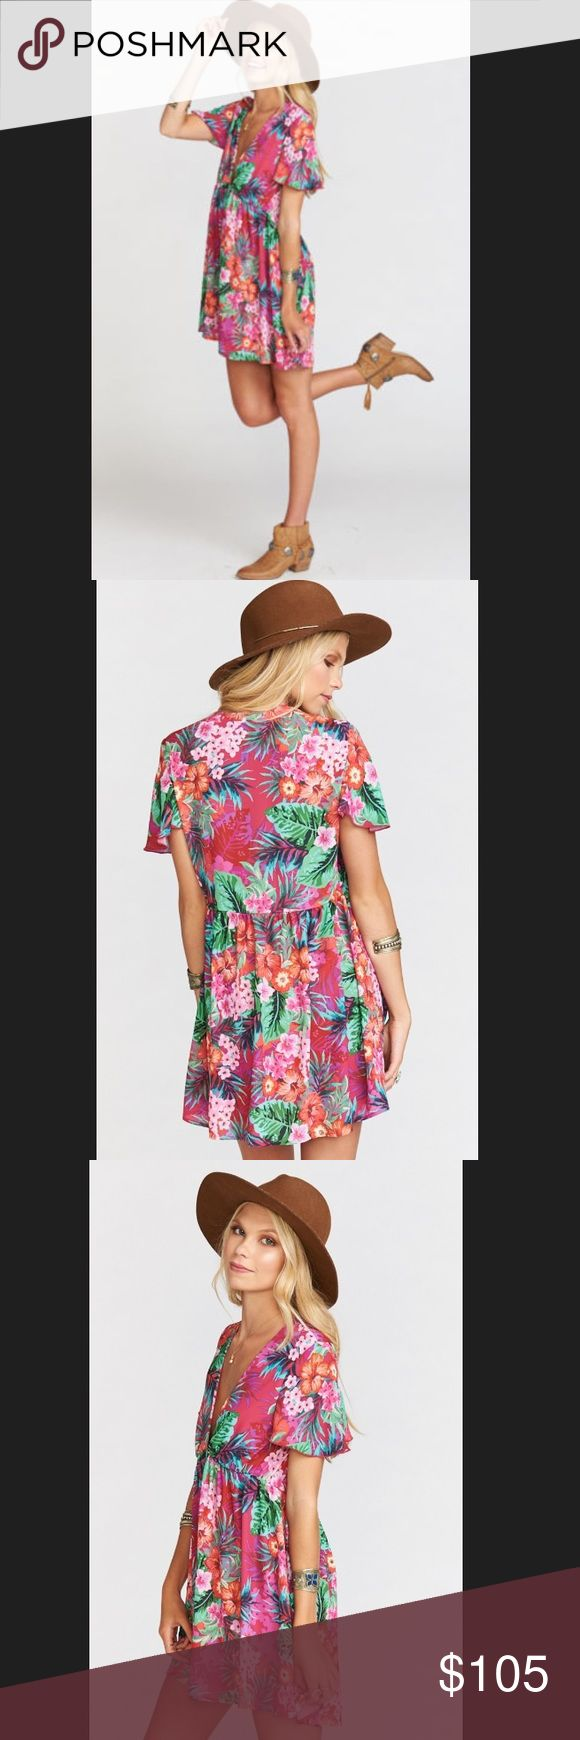 Show Me Your Mumu Austin Dress Aloha Beautiful S Show Me Your Mumu - Austin Dress - Aloha Beautiful - size Small (Brand New With Tags) ***Never Worn*** same print worn on Bachelor in Paradise by Sarah Vendal Show Me Your MuMu Dresses Mini